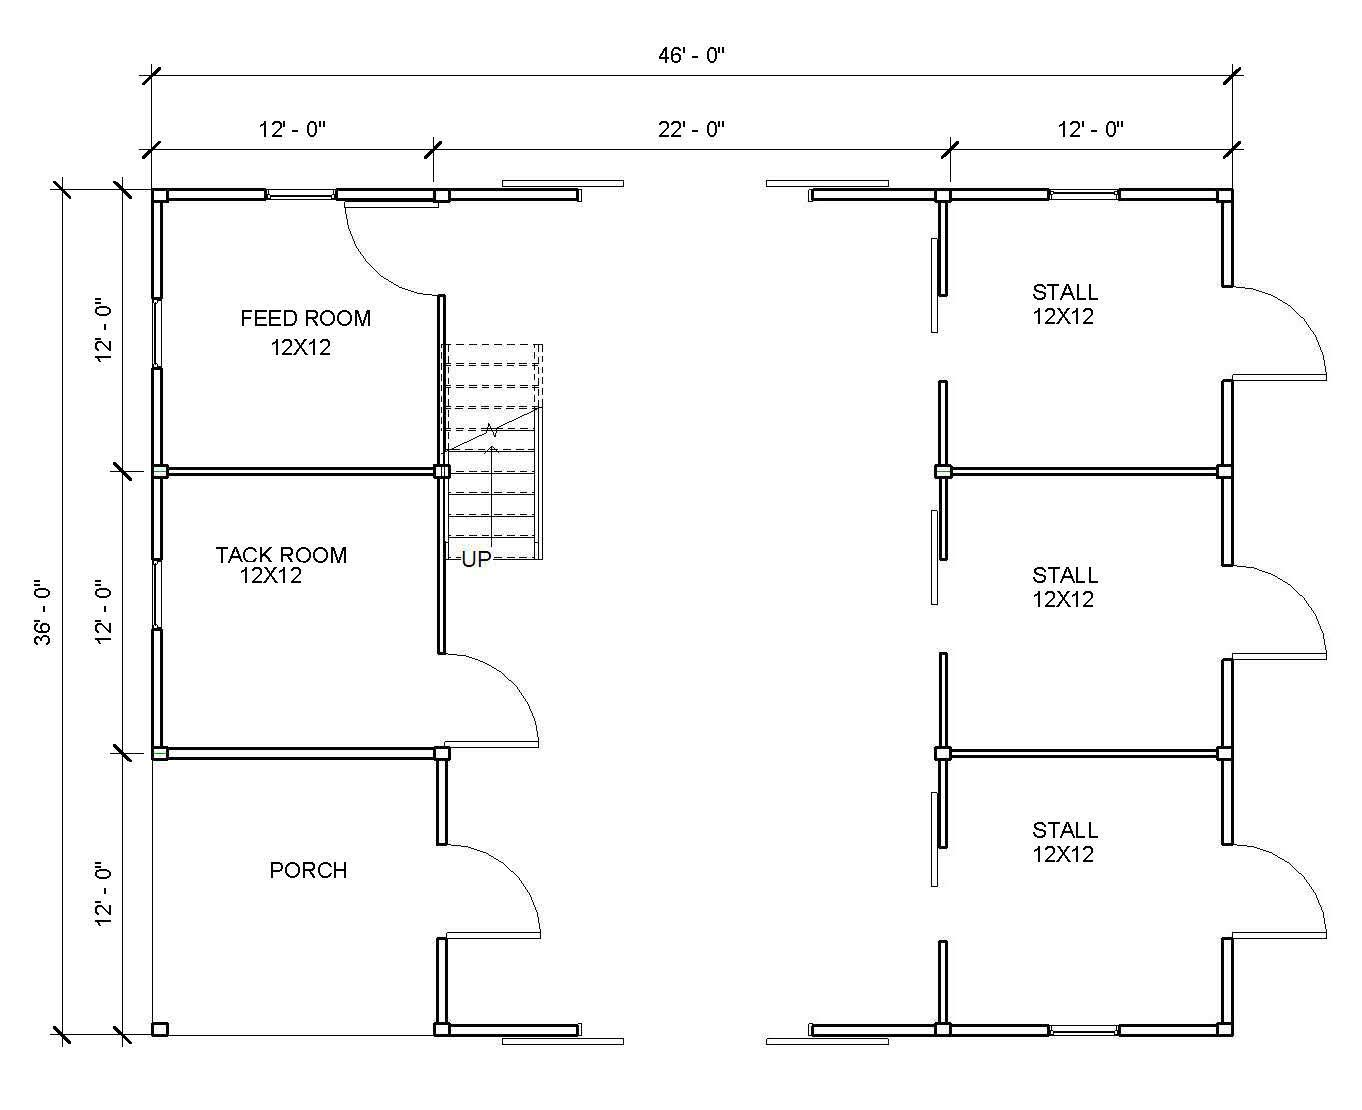 Pin By Legacy Post Beam On Pre Designed Kit The Armstrong 4636 Post And Beam Design Beams